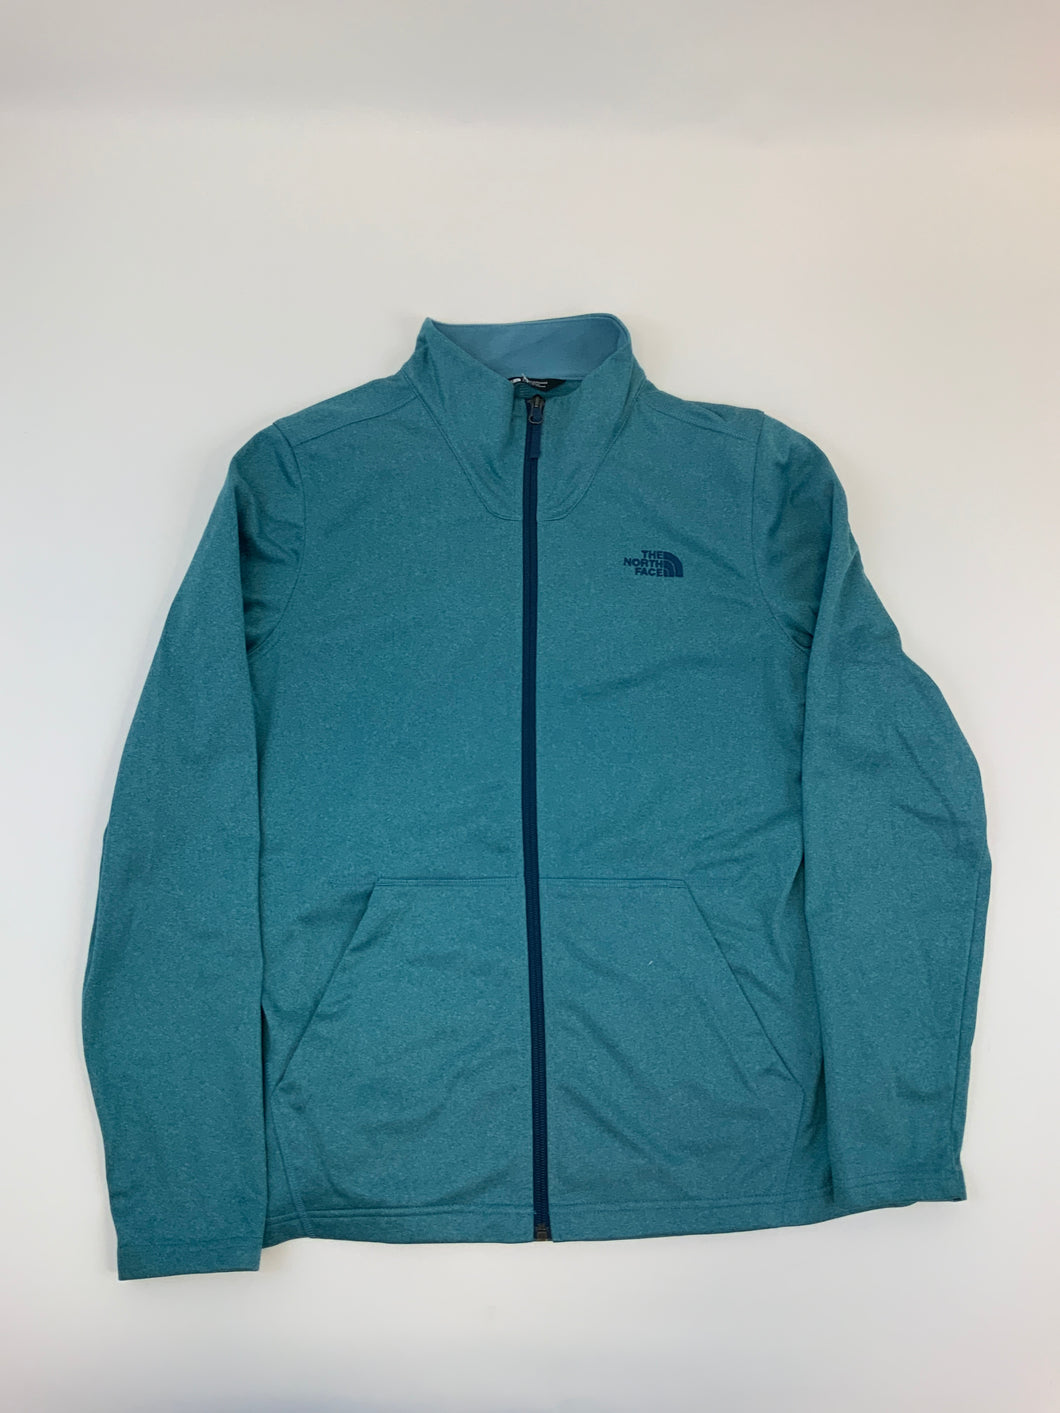 North Face Athletic Jacket Size Large